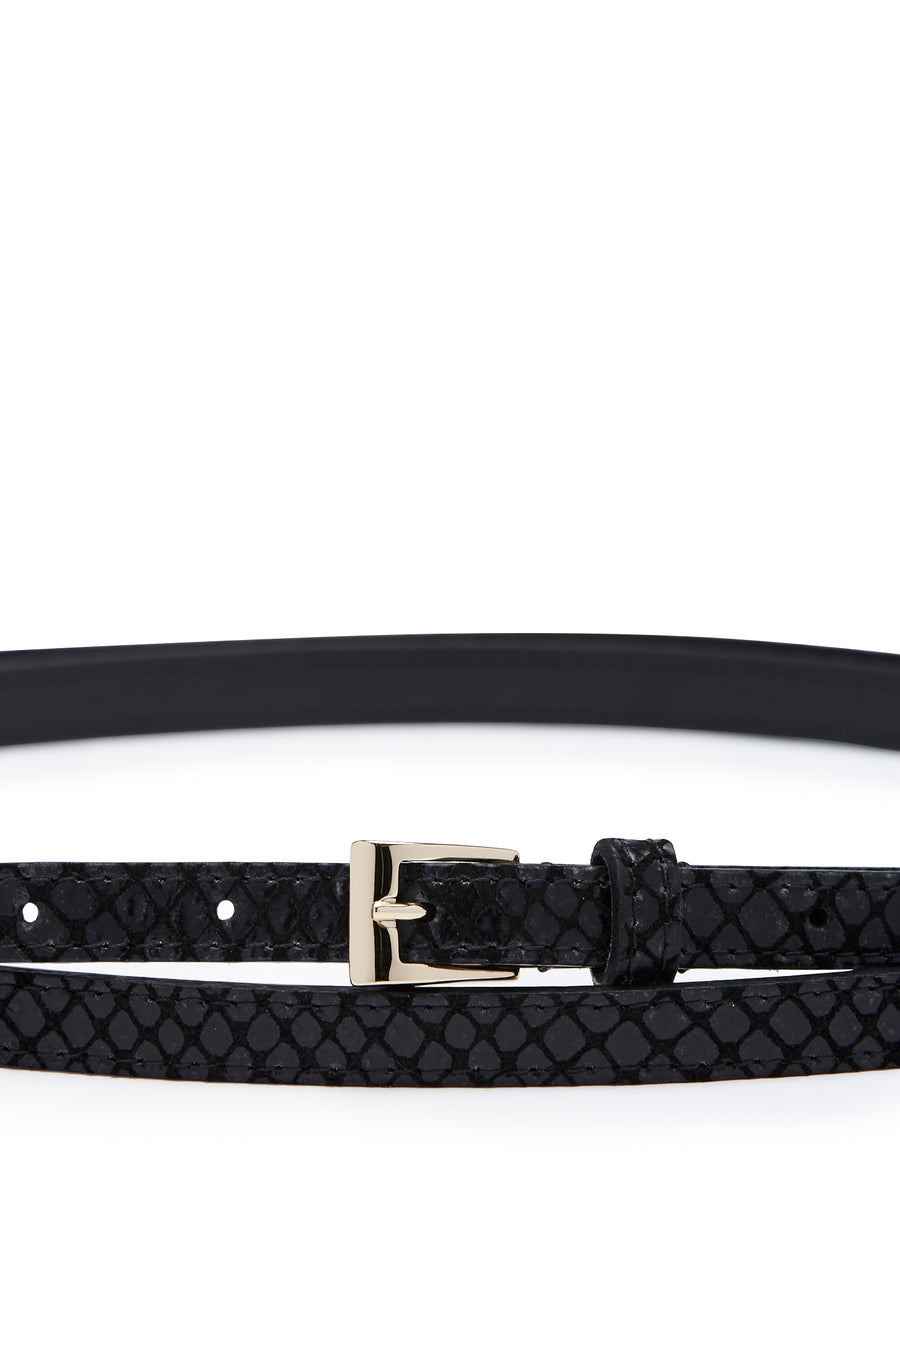 Double Wrap Belt, embossed python finish, Italian Leather. Buckle fastening, 1.2cm band width. Color Black Nero